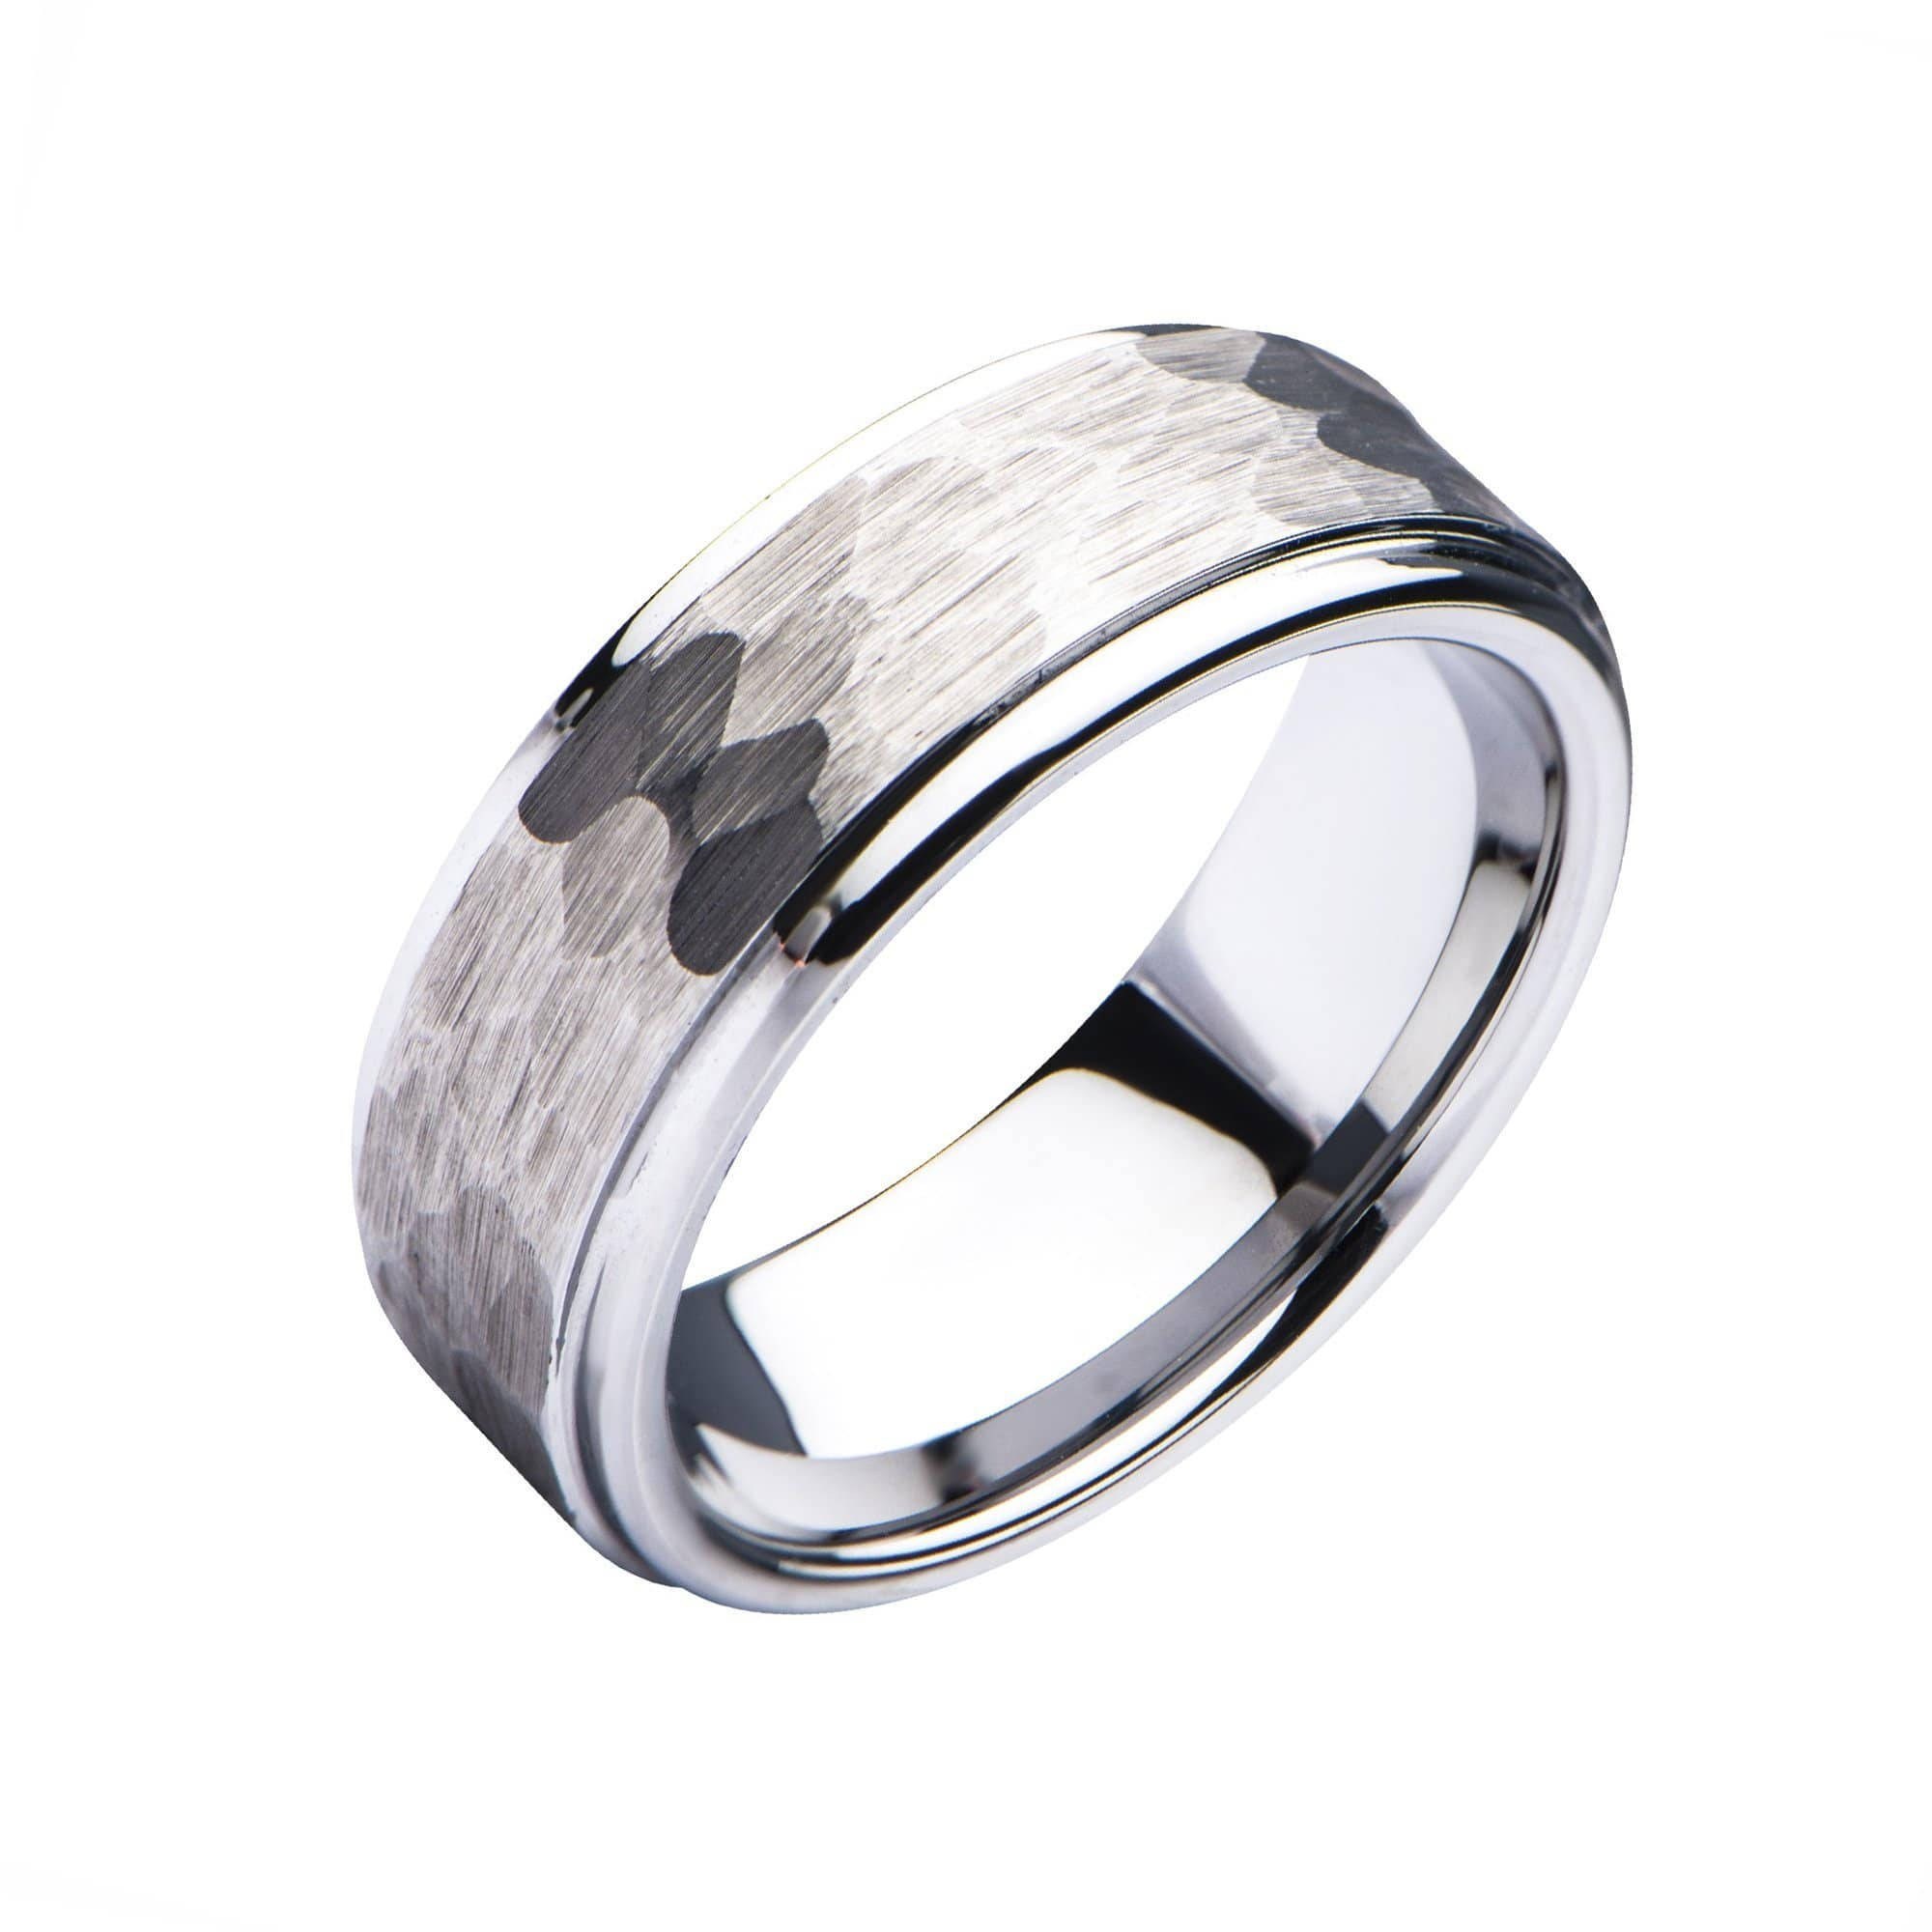 STAINLESS STEEL RING SZ10